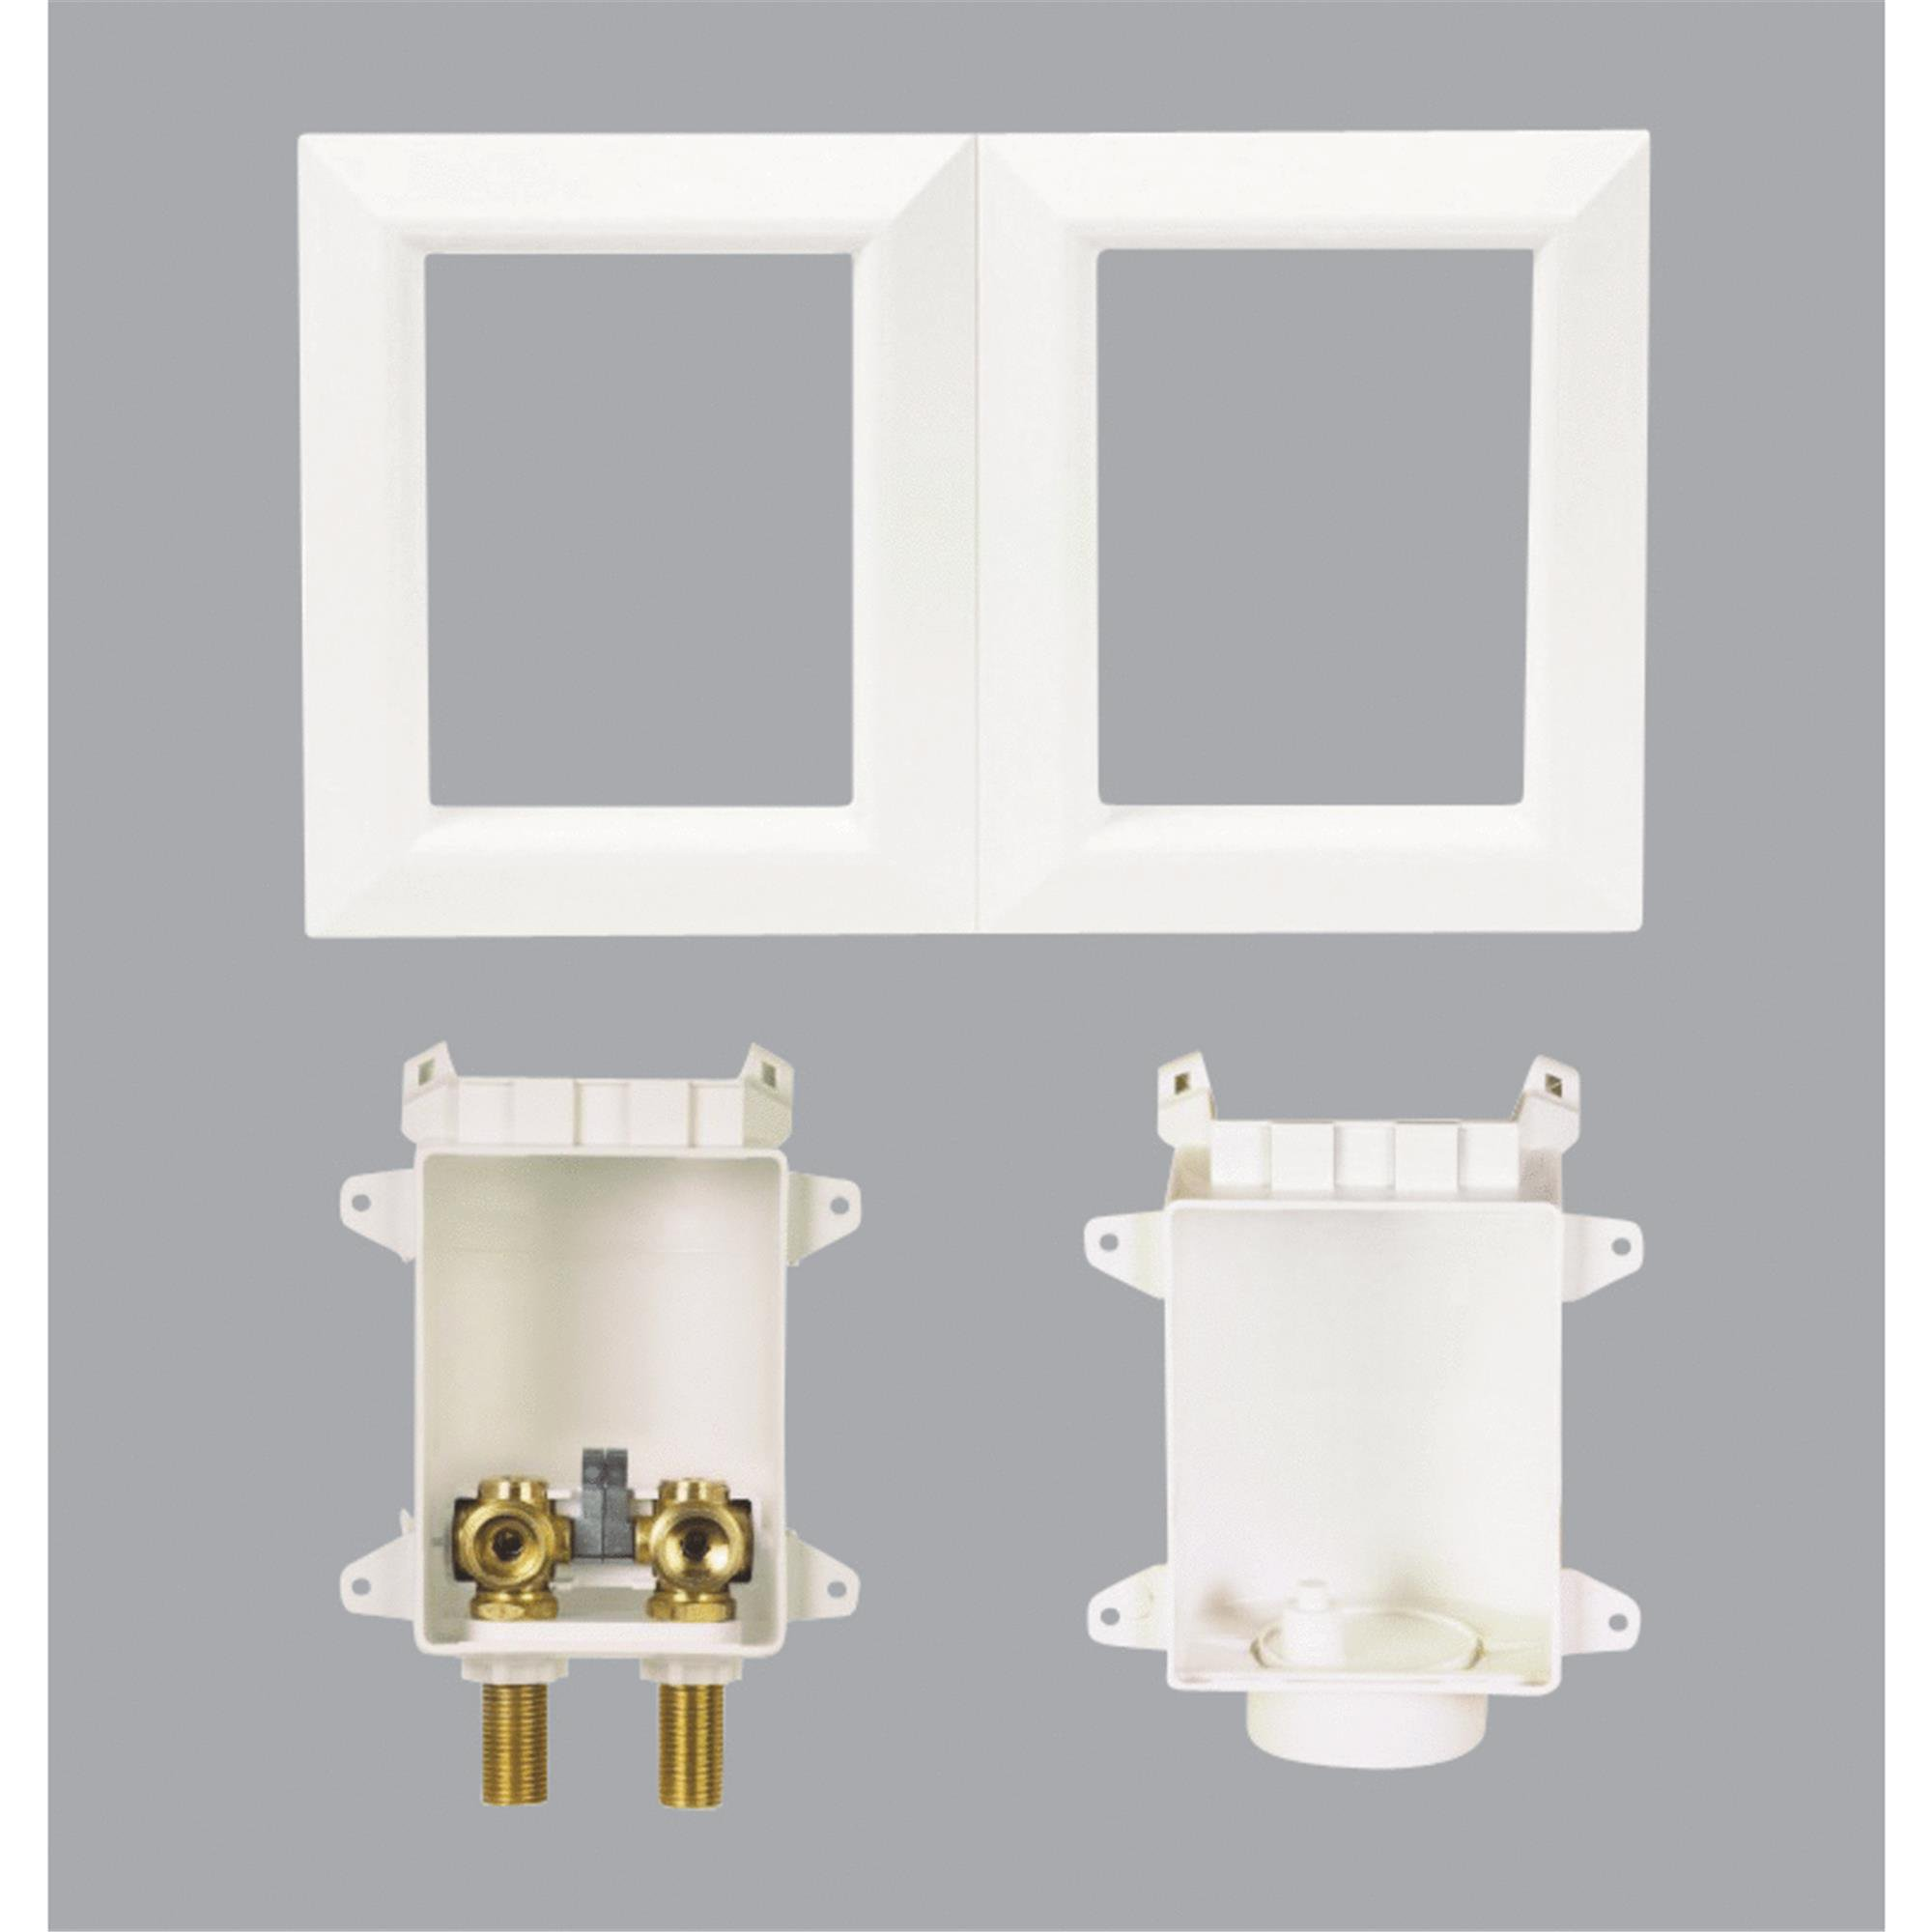 Sioux Chief Washing Machine Outlet Box by Sioux Chief